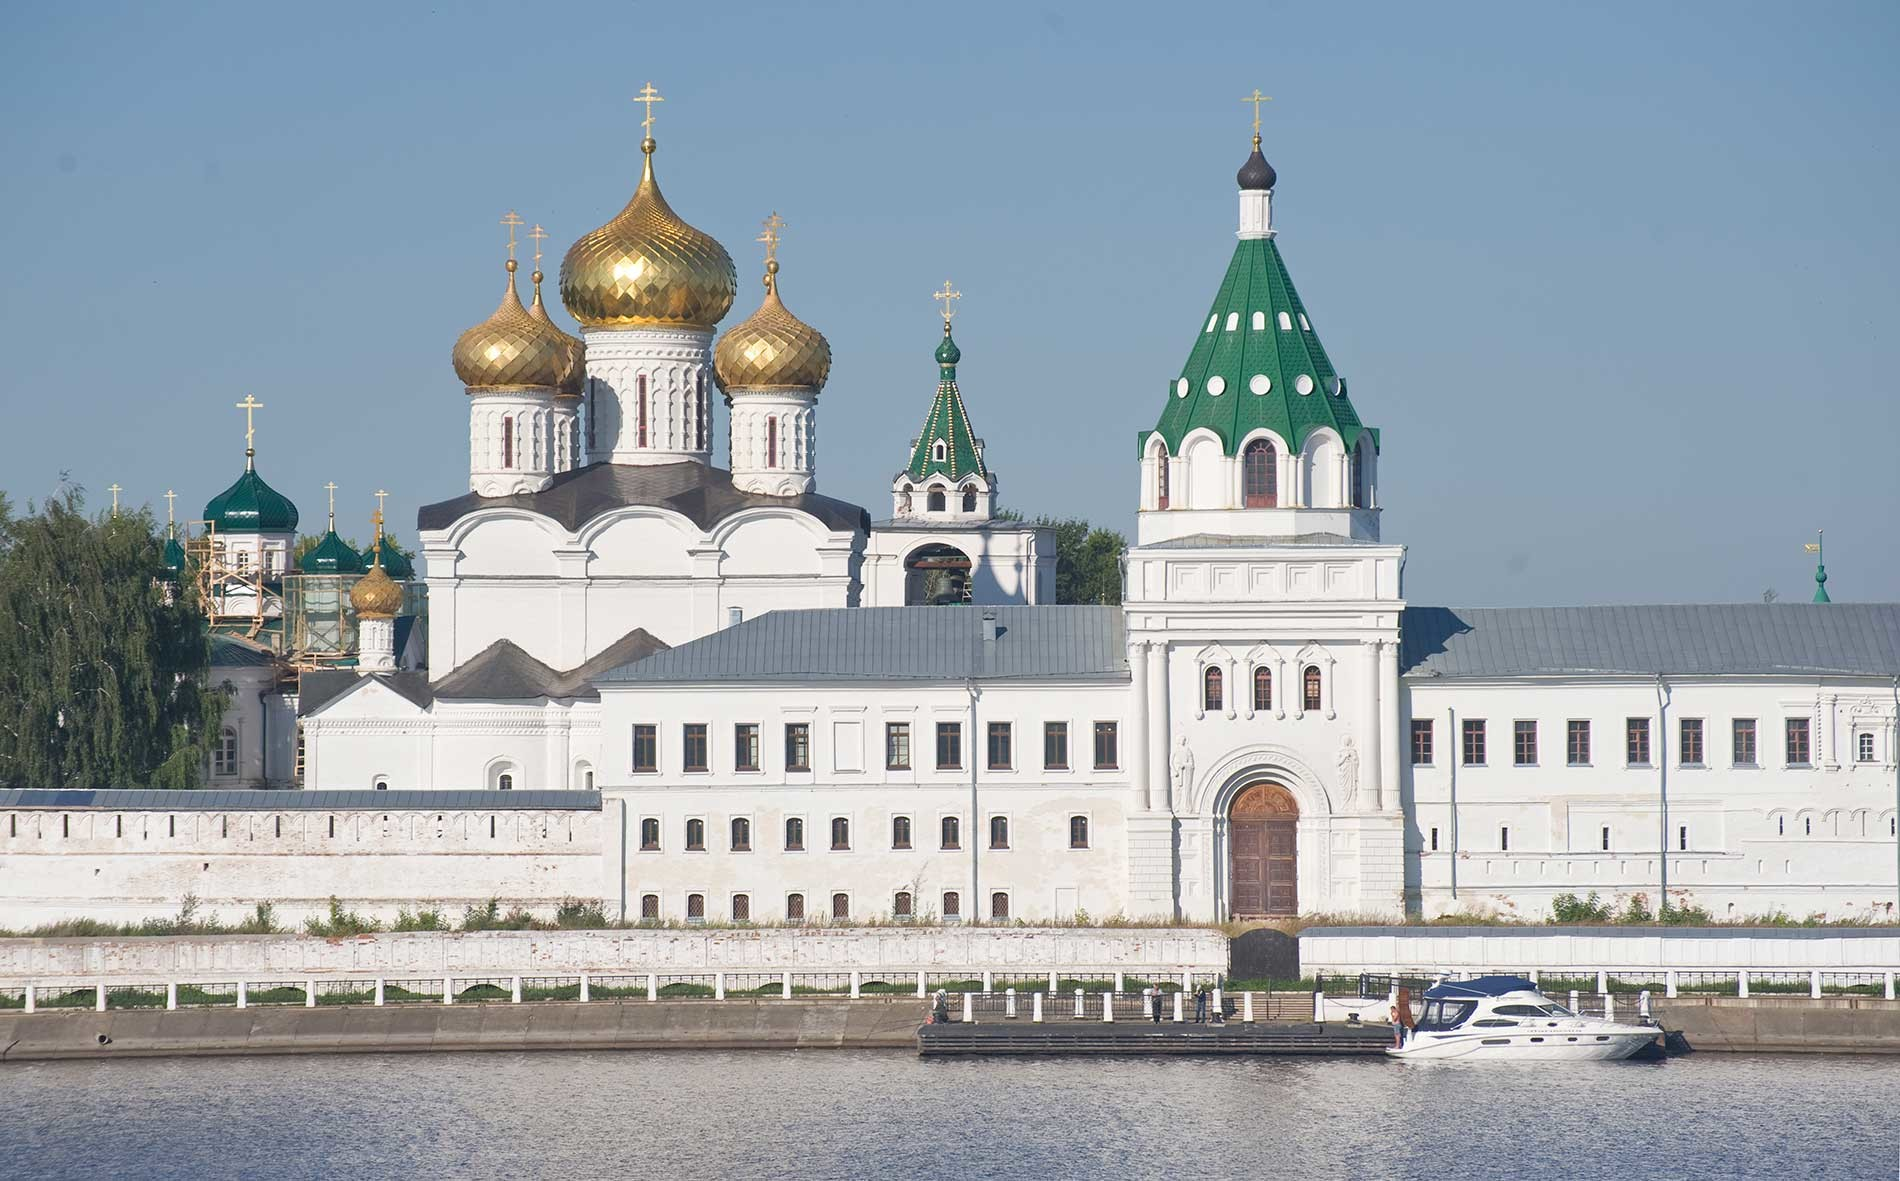 Trinity-Ipatiev Monastery, east view across Kostroma River. From left: Cathedral of Nativity of the Virgin; Trinity Cathedral; bell tower; Archbishop's Cloisters with Gate Church of Sts. Chrysanthus & Daria. Aug. 13, 2017.